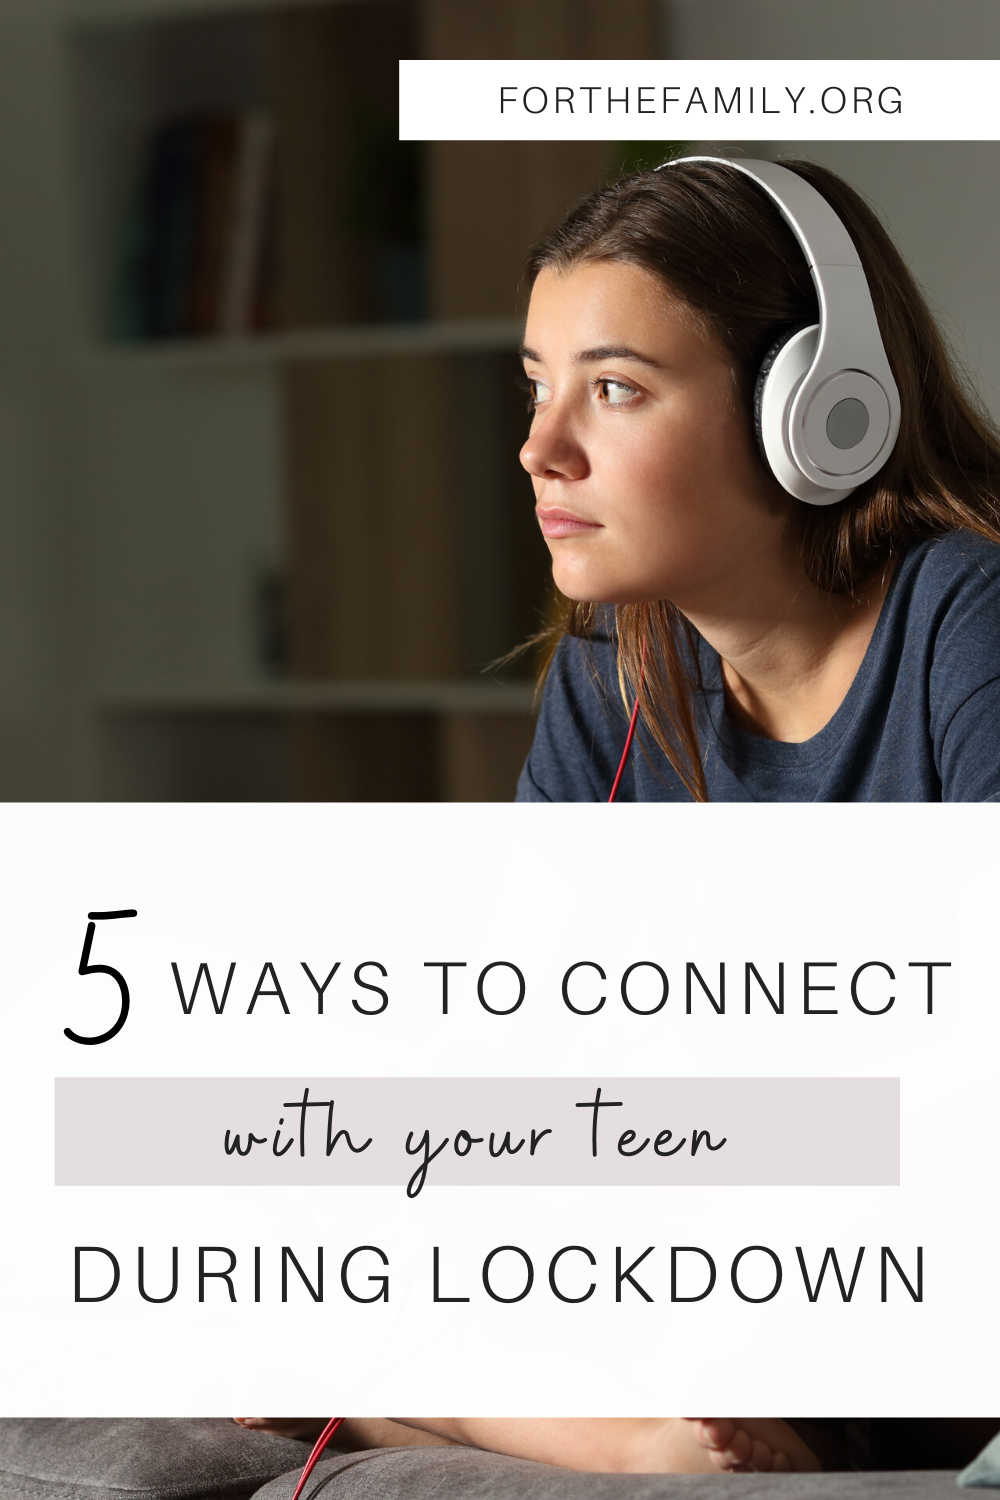 With schools closed and plans canceled, it's important we nourish our relationships with our teens. This unusual season has opened the door for us to connect and create precious memories as a family! Here are a few ideas to do just that...